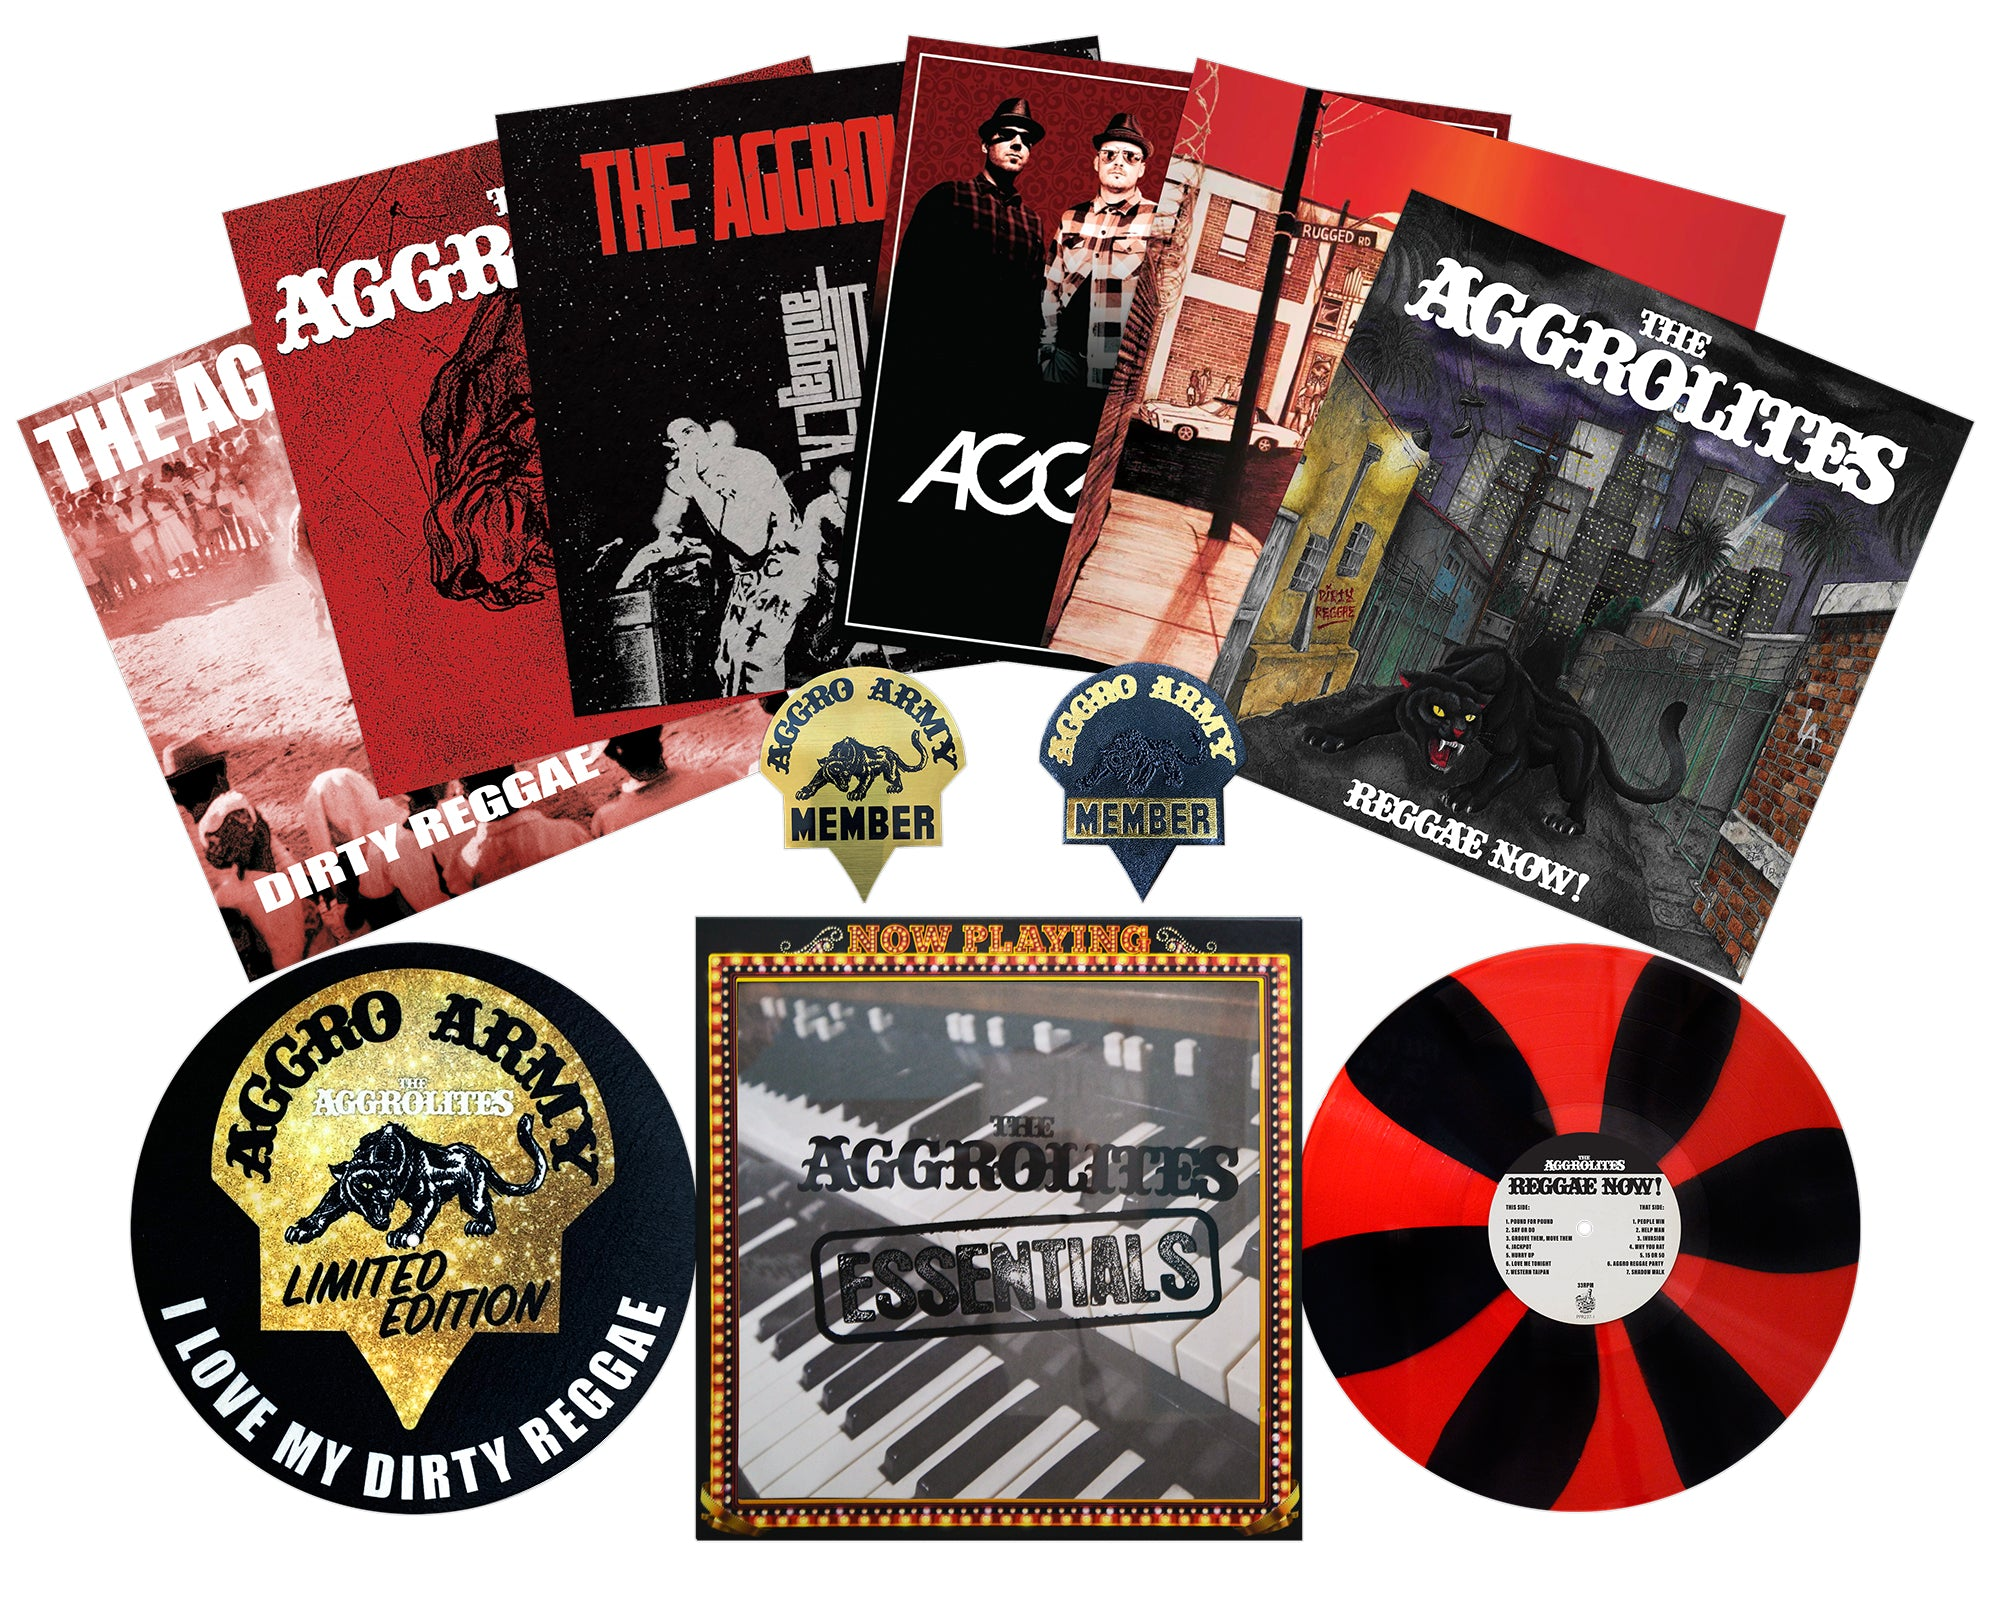 The Aggrolites - Essentials Box Set